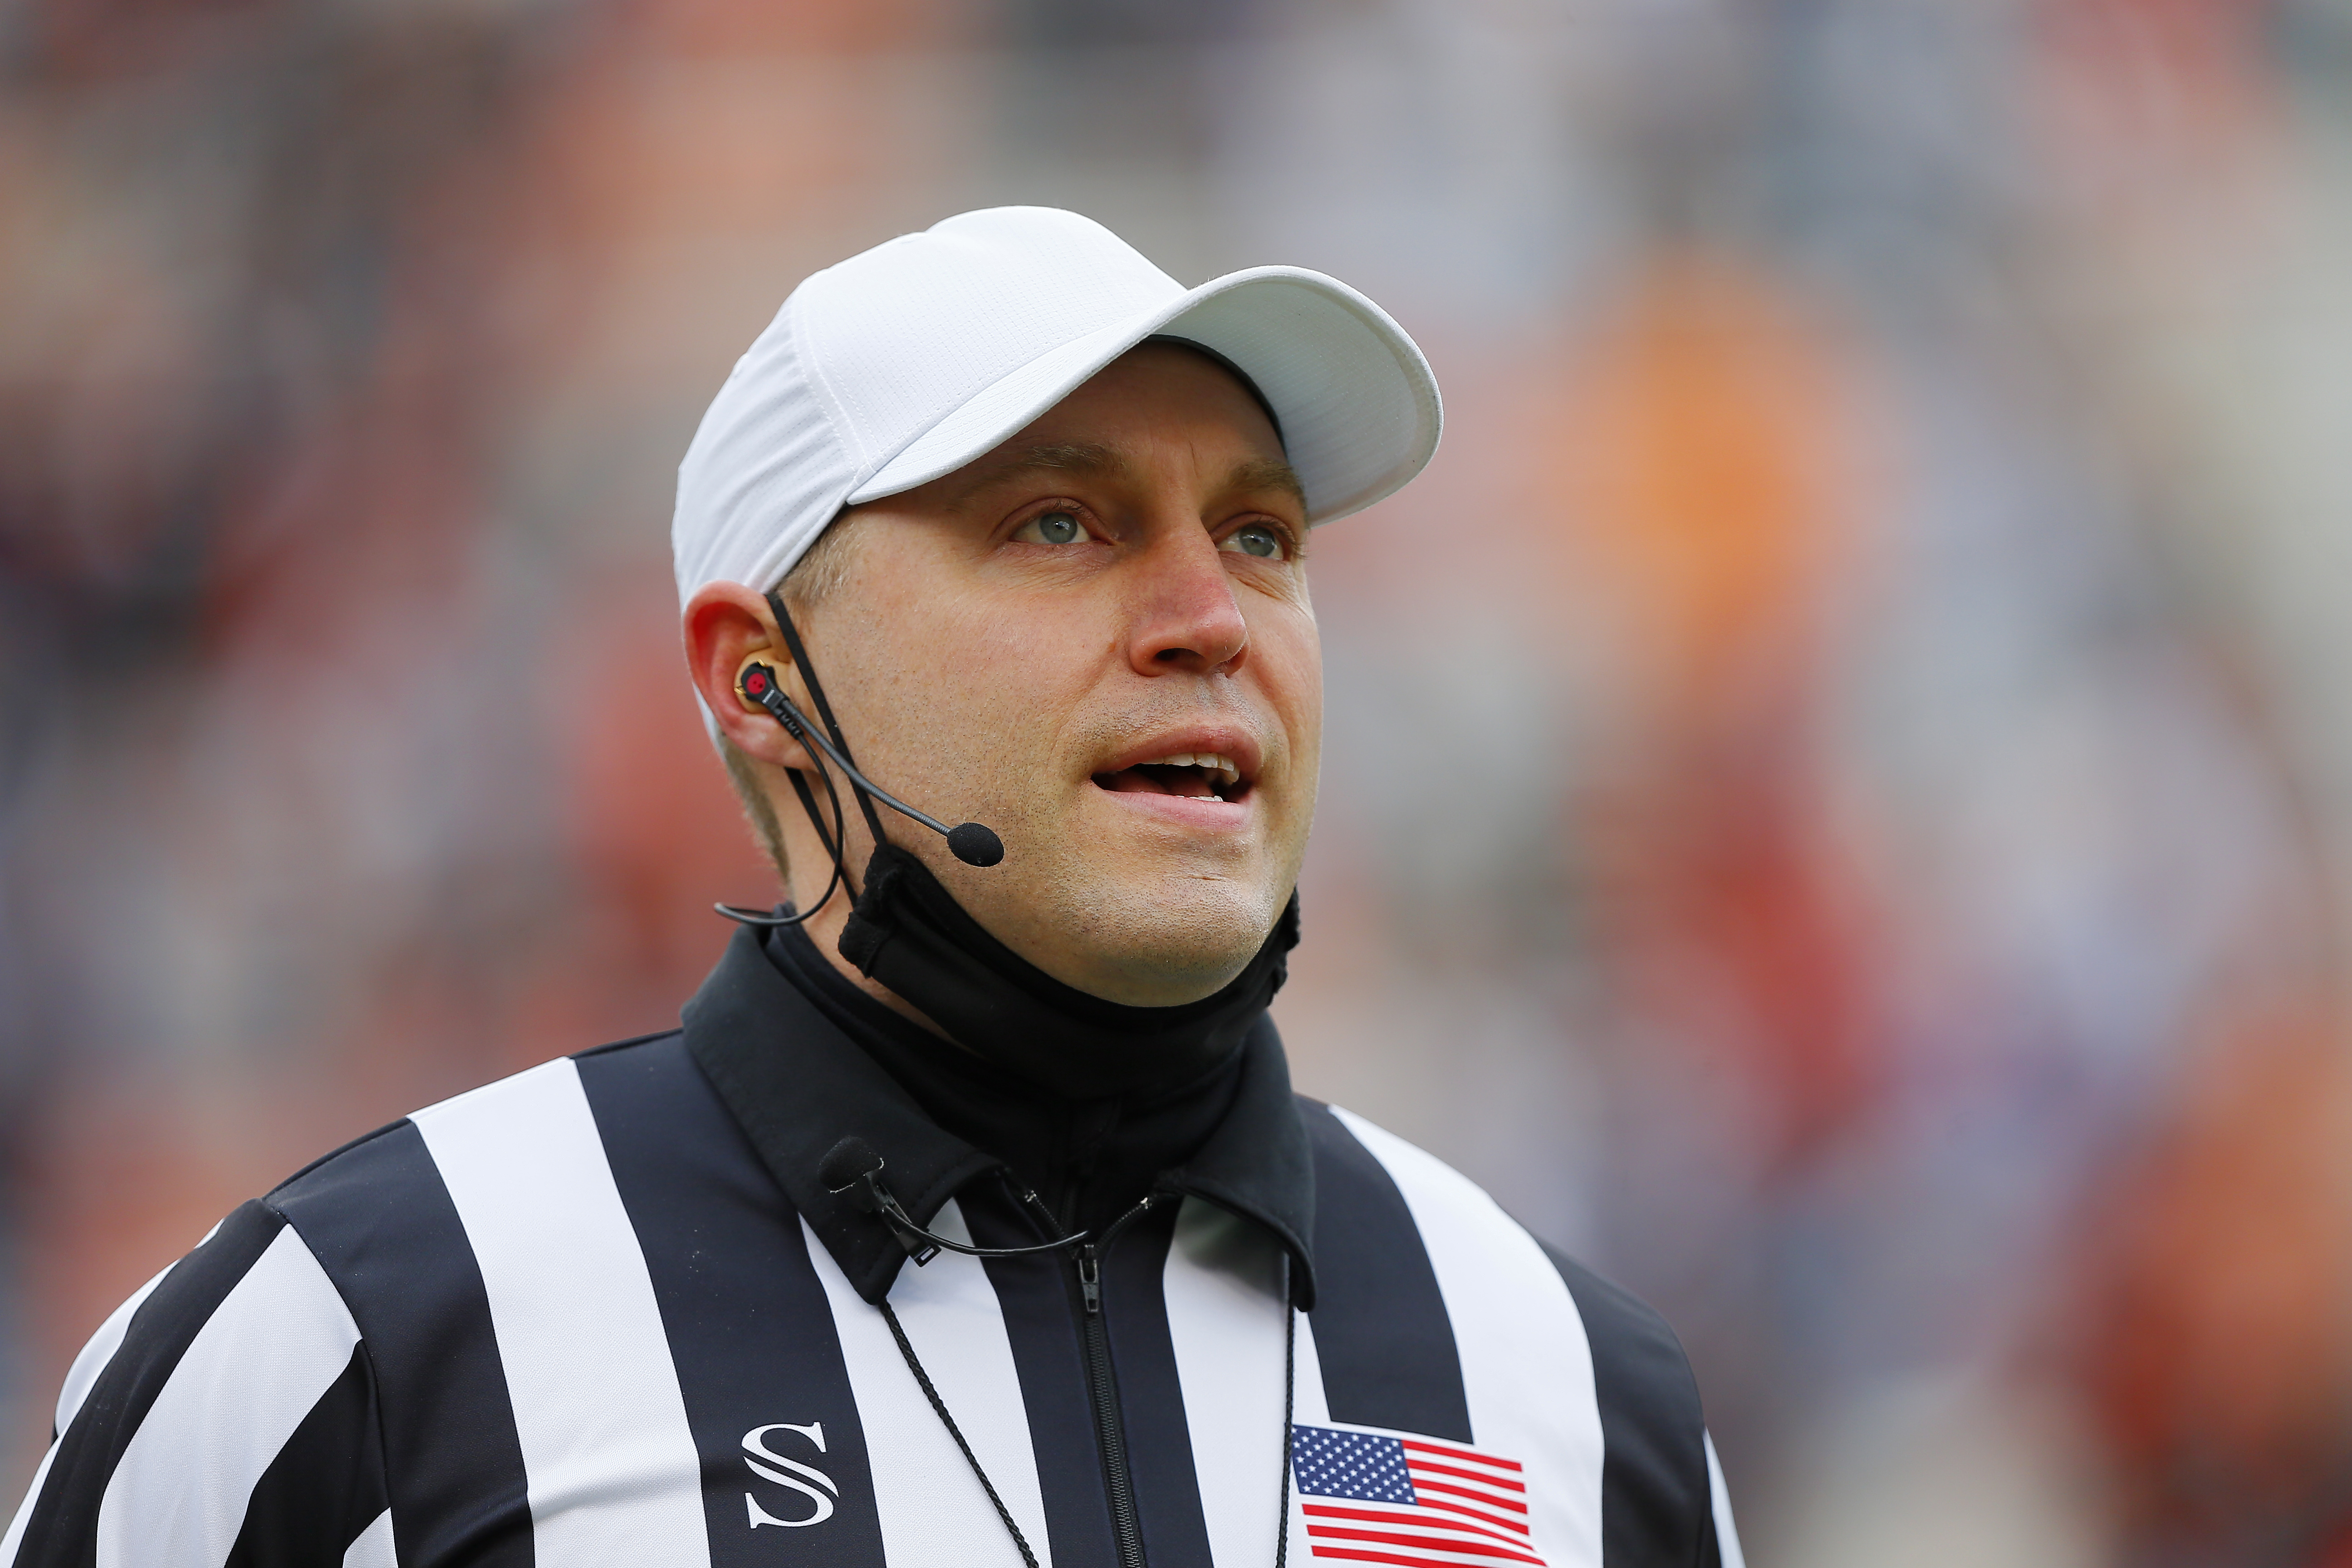 Referee Brandon Cruse announces the result of a review of a pass by the Oklahoma State Cowboys where the ball was dropped in the end zone against the Texas Tech Red Raiders in the first quarter at Boone Pickens Stadium on November 28, 2020 in Stillwater, Oklahoma. OSU won 50-44.